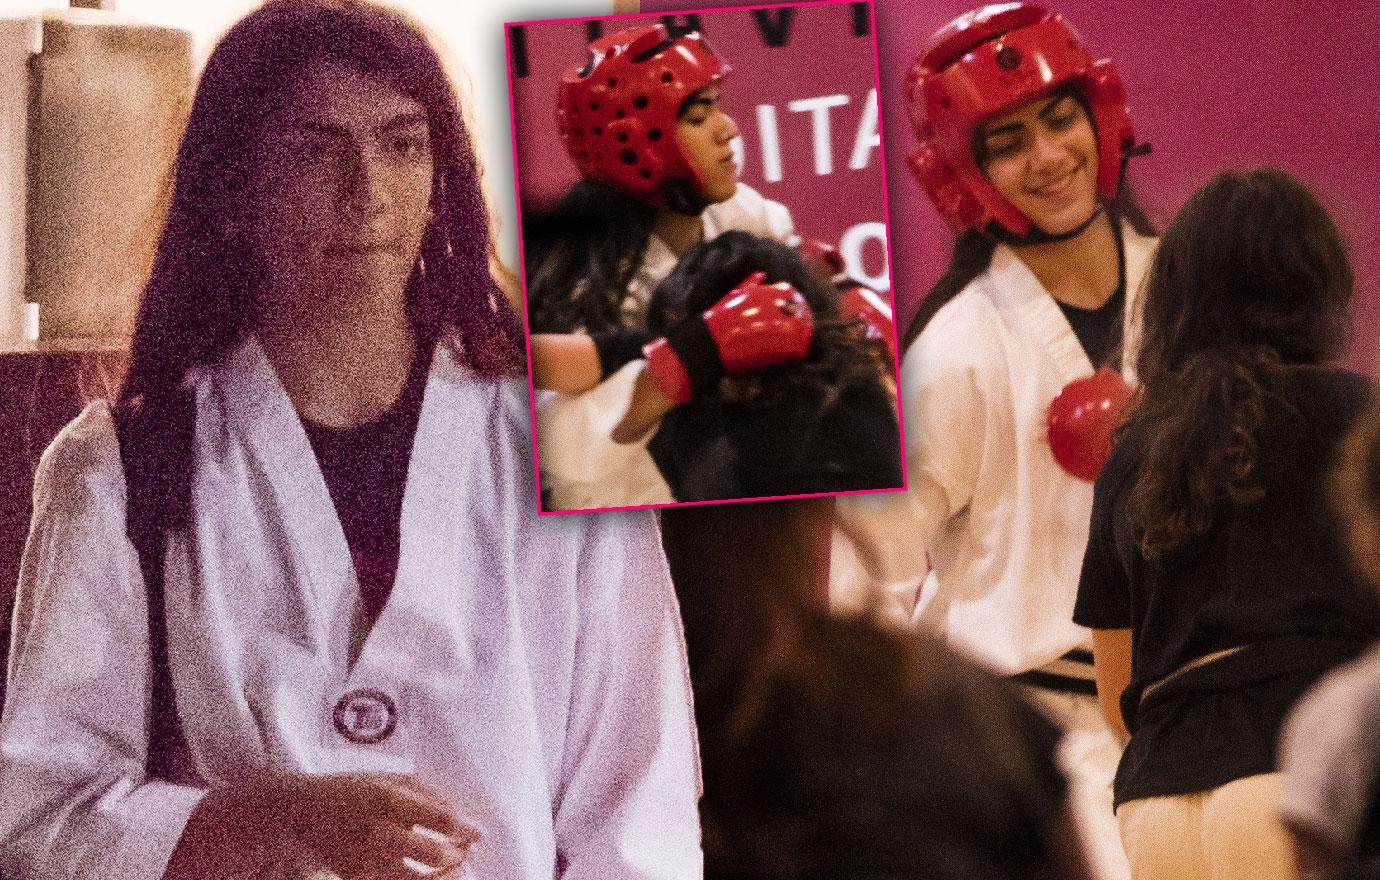 //blanket jackson shows off punching power at taekwondo pp